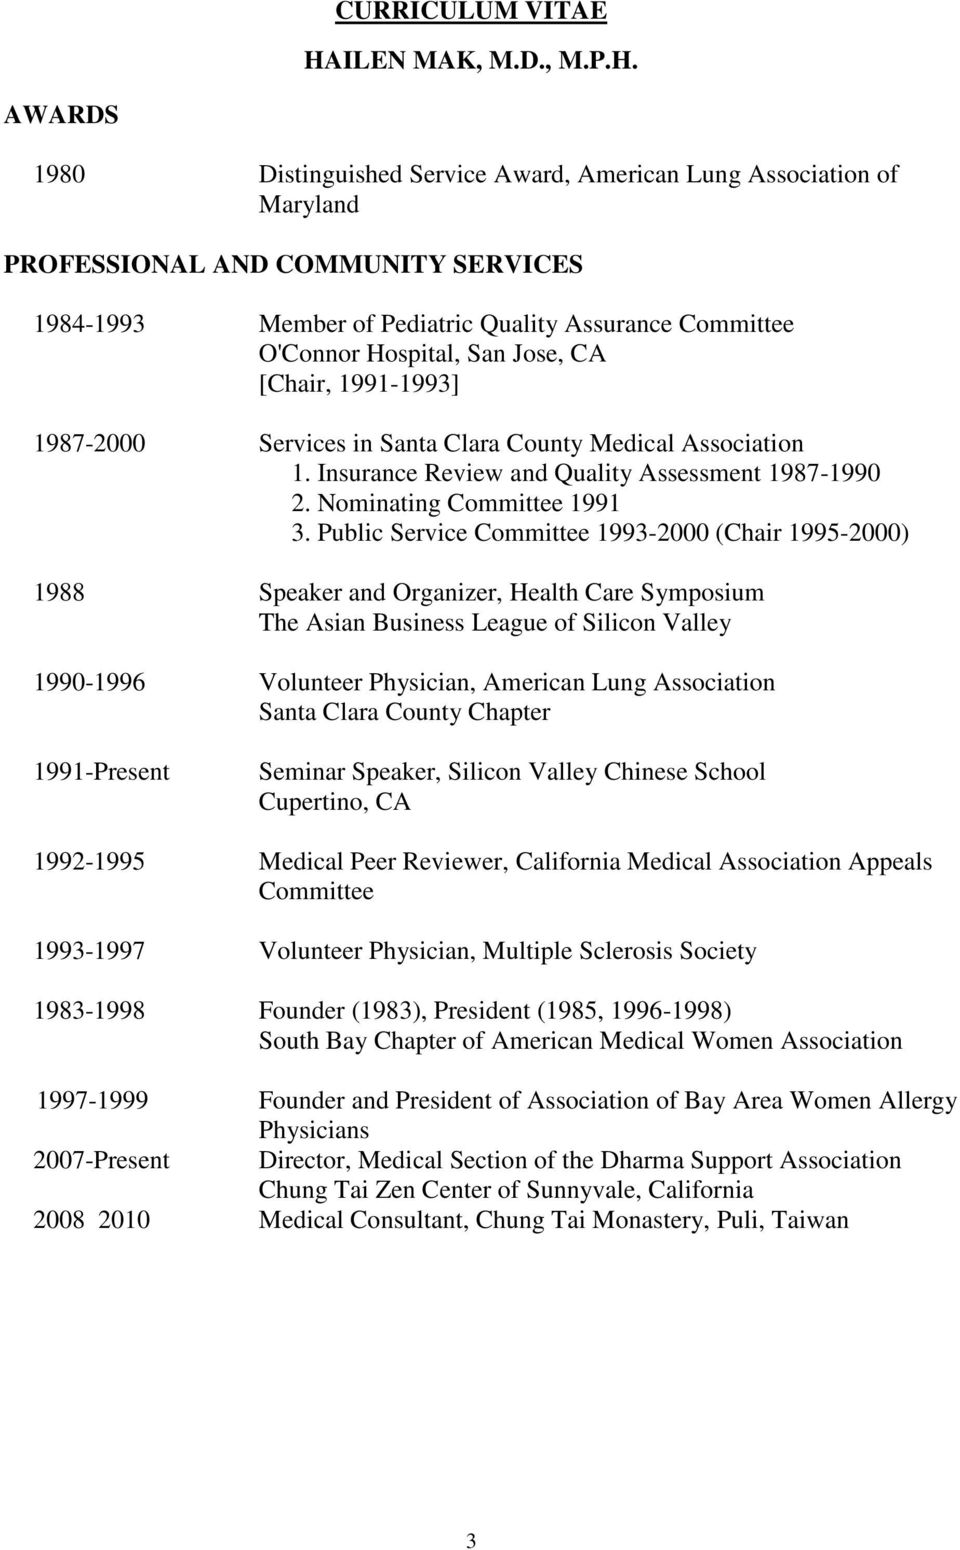 Public Service Committee 1993-2000 (Chair 1995-2000) 1988 Speaker and Organizer, Health Care Symposium The Asian Business League of Silicon Valley 1990-1996 Volunteer Physician, American Lung